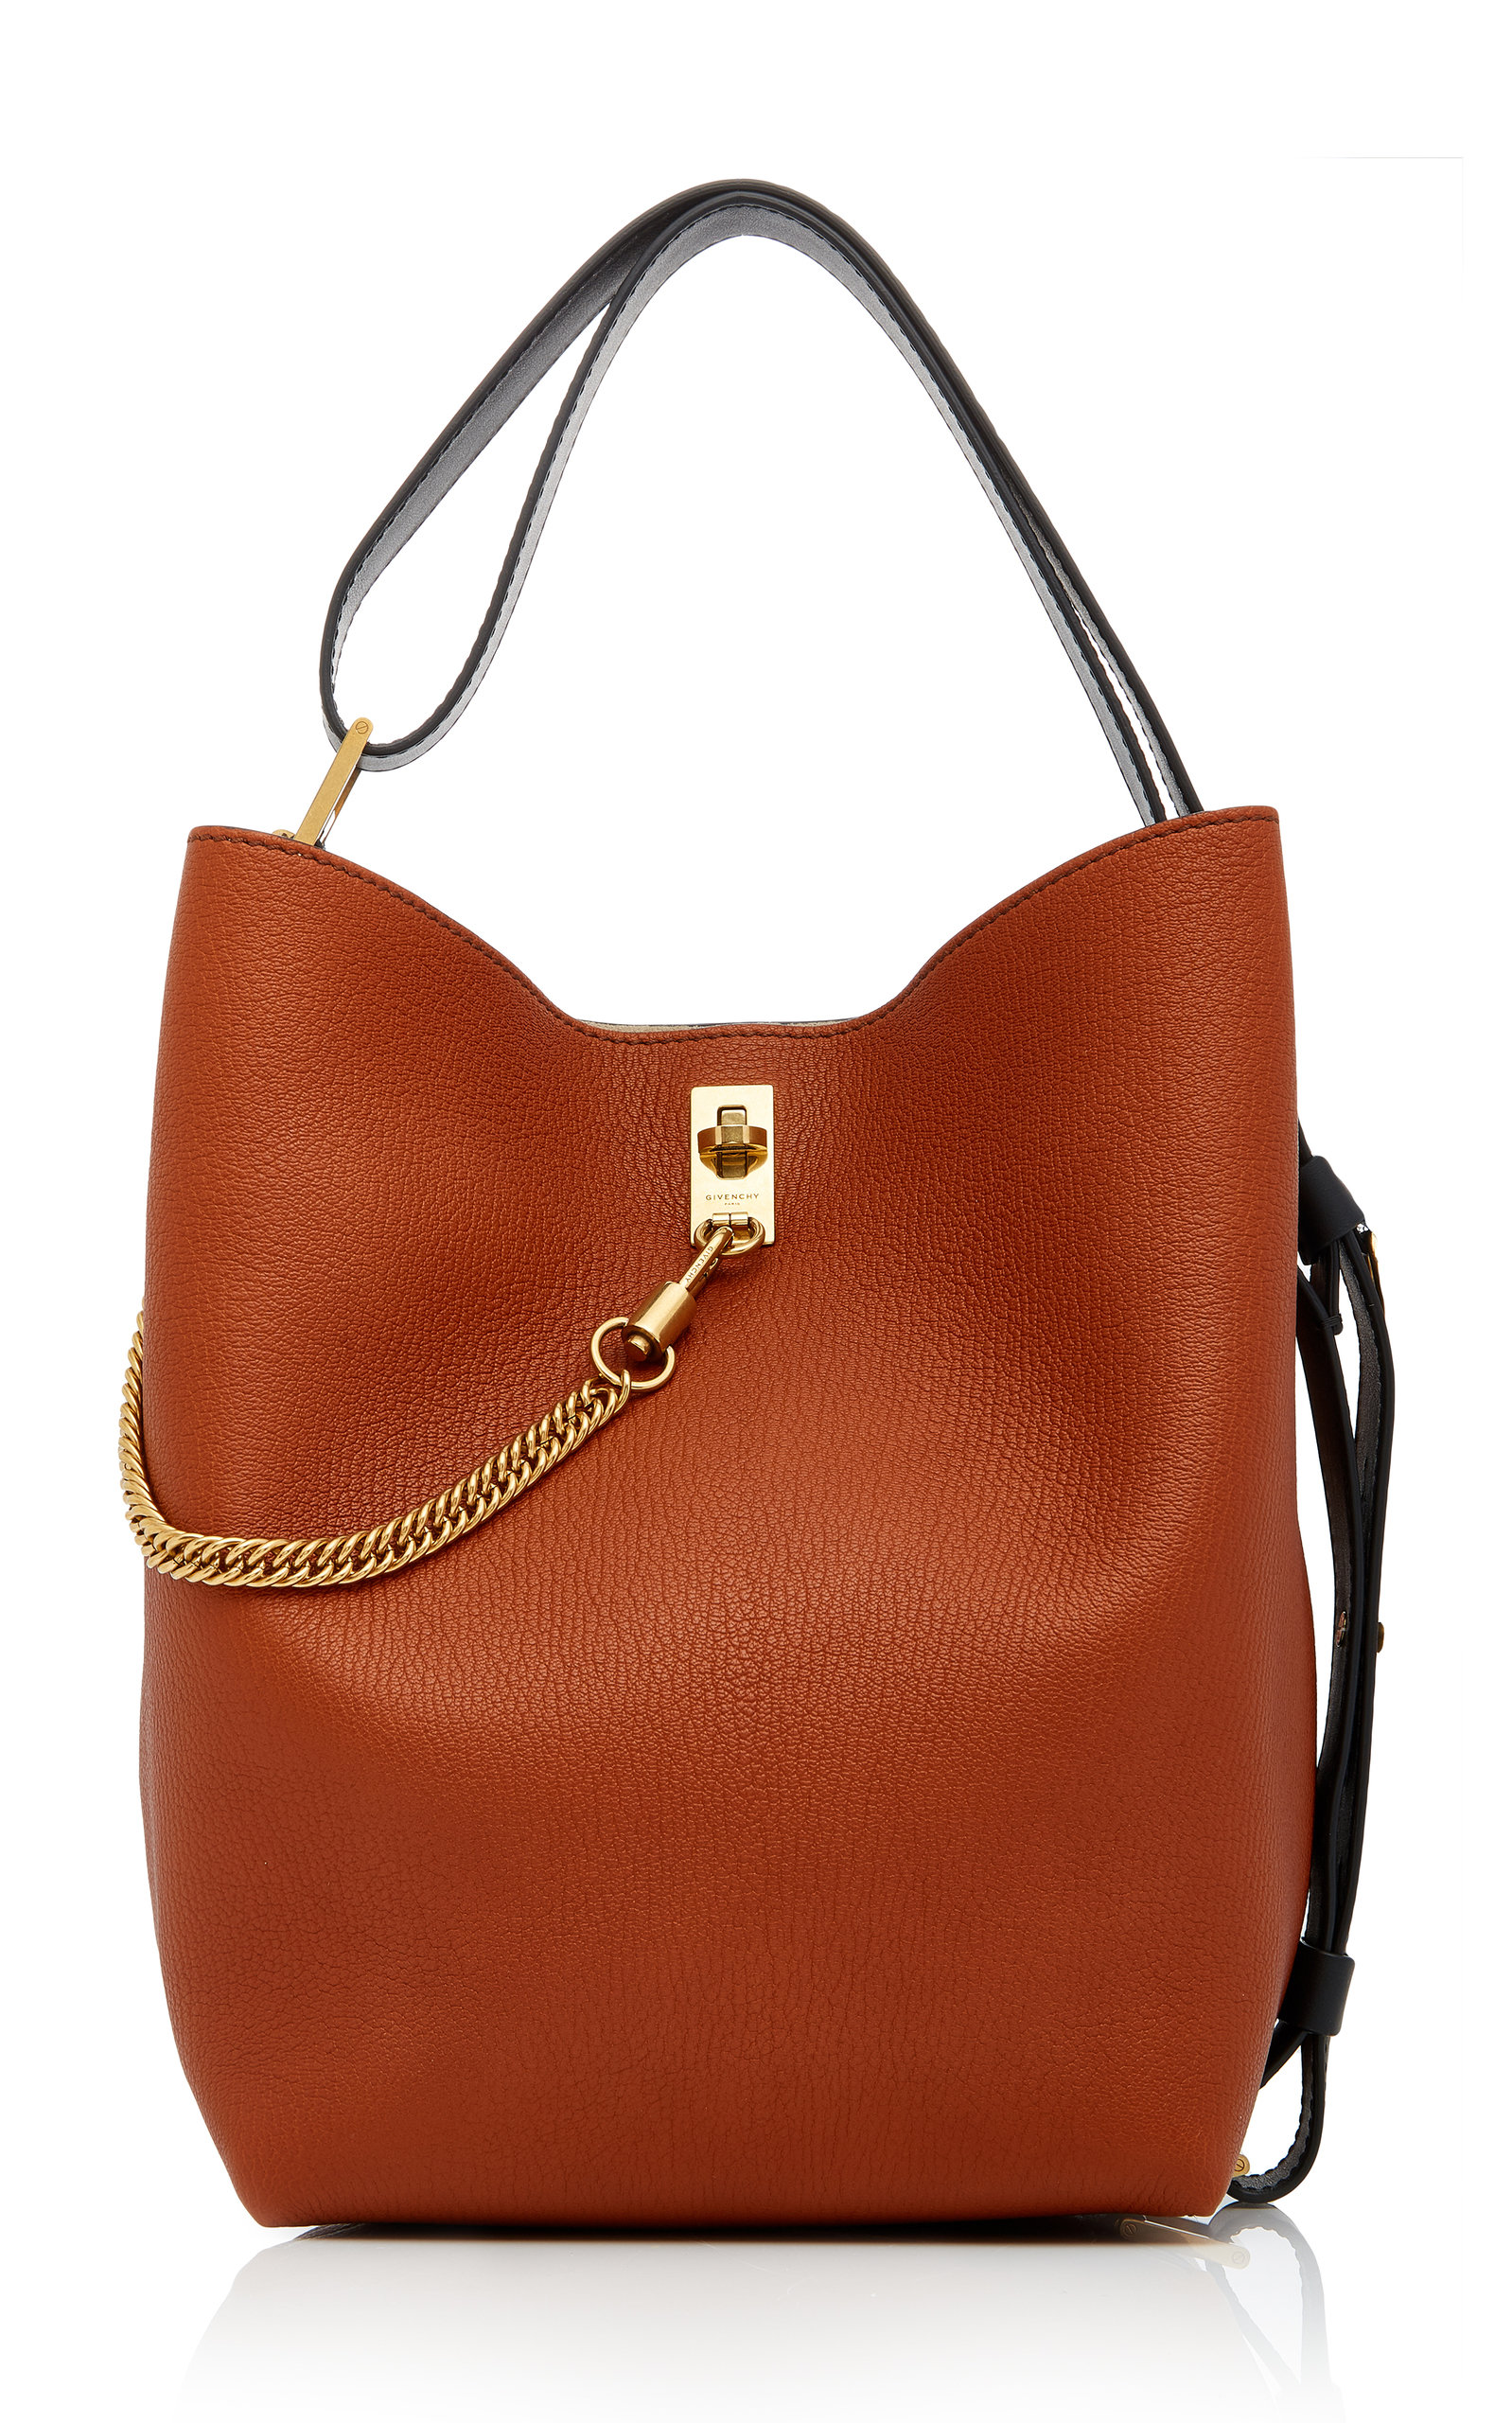 Gv Medium Chain-Trimmed Leather Tote in Brown